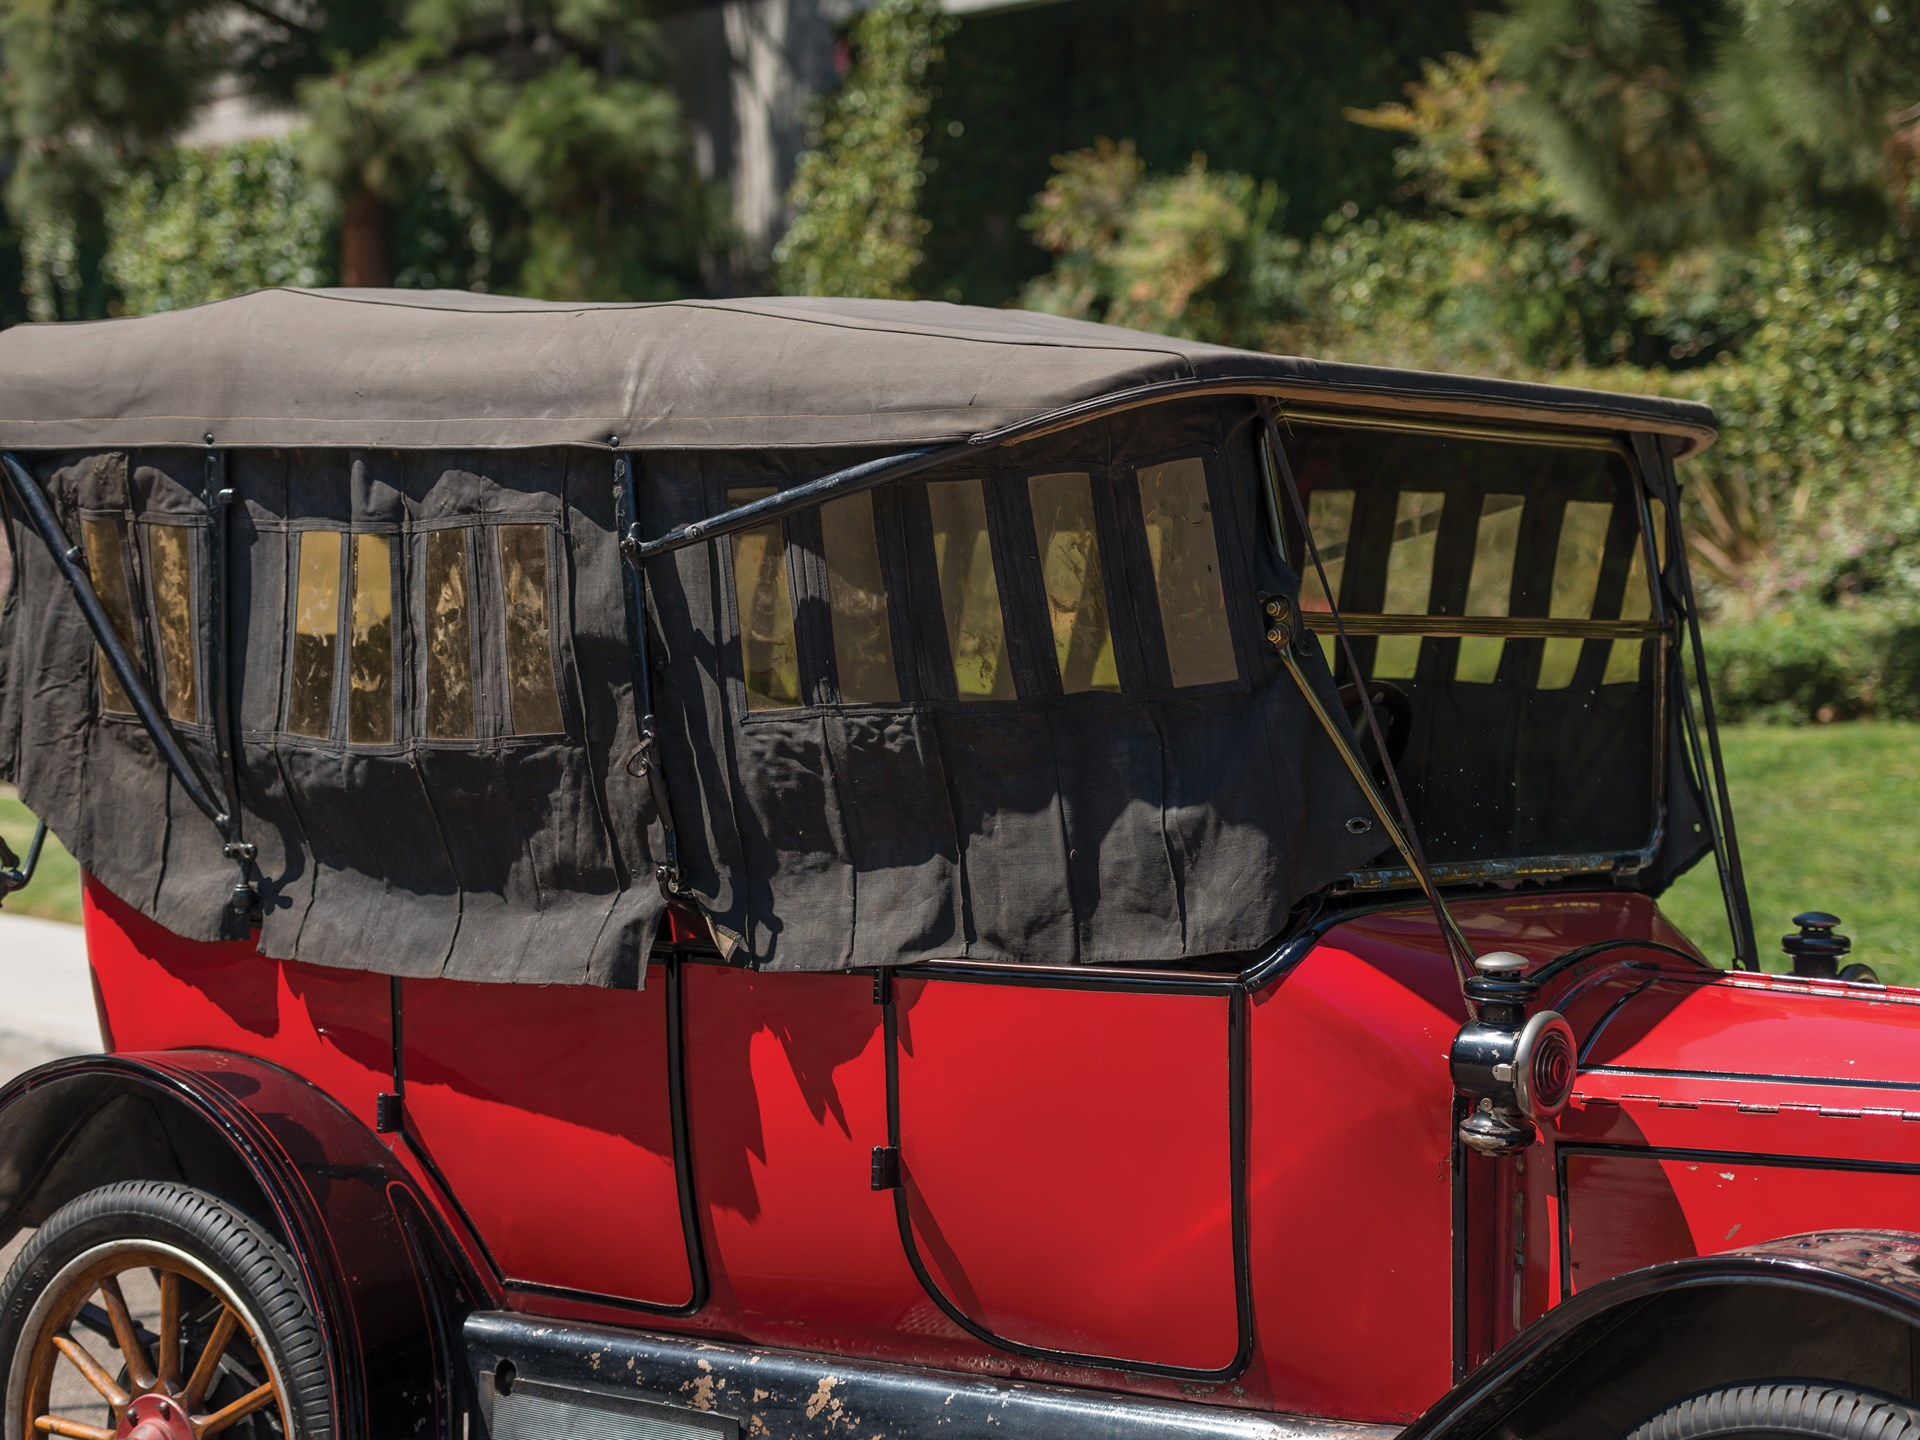 1913 Maxwell Model 25 Touring